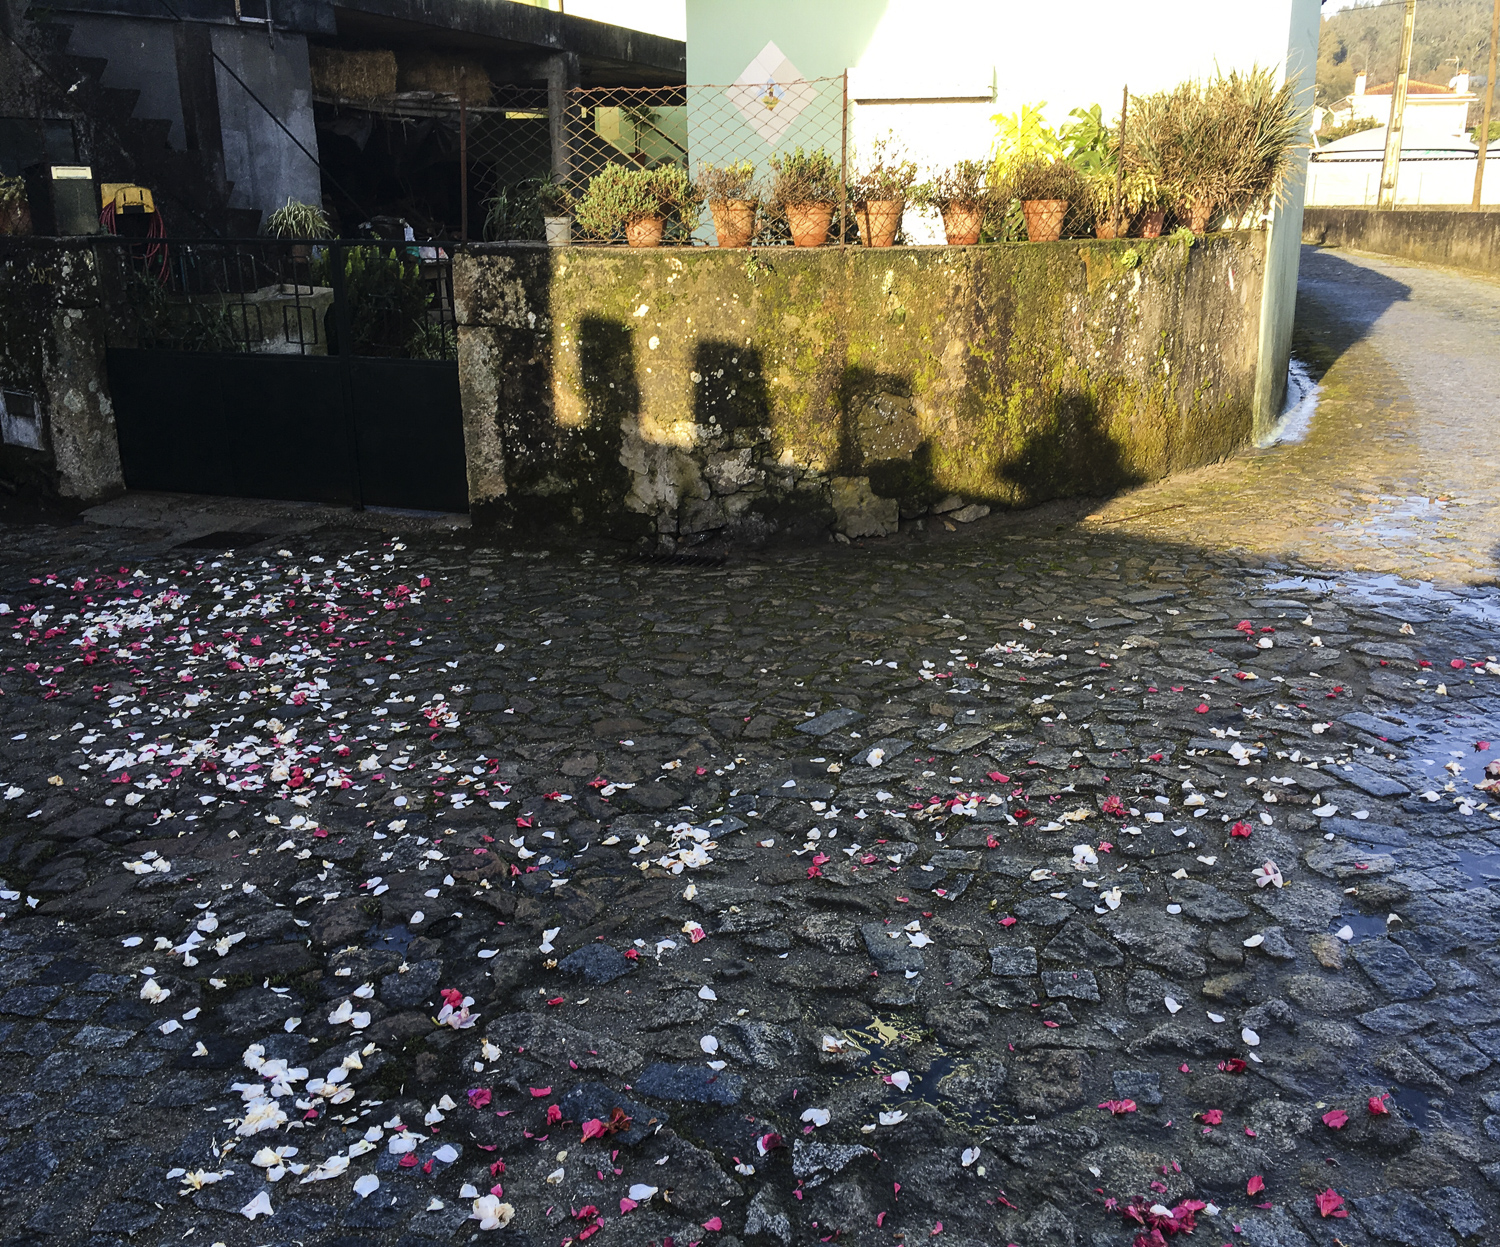 Petals strewn at house door to welcome Easter